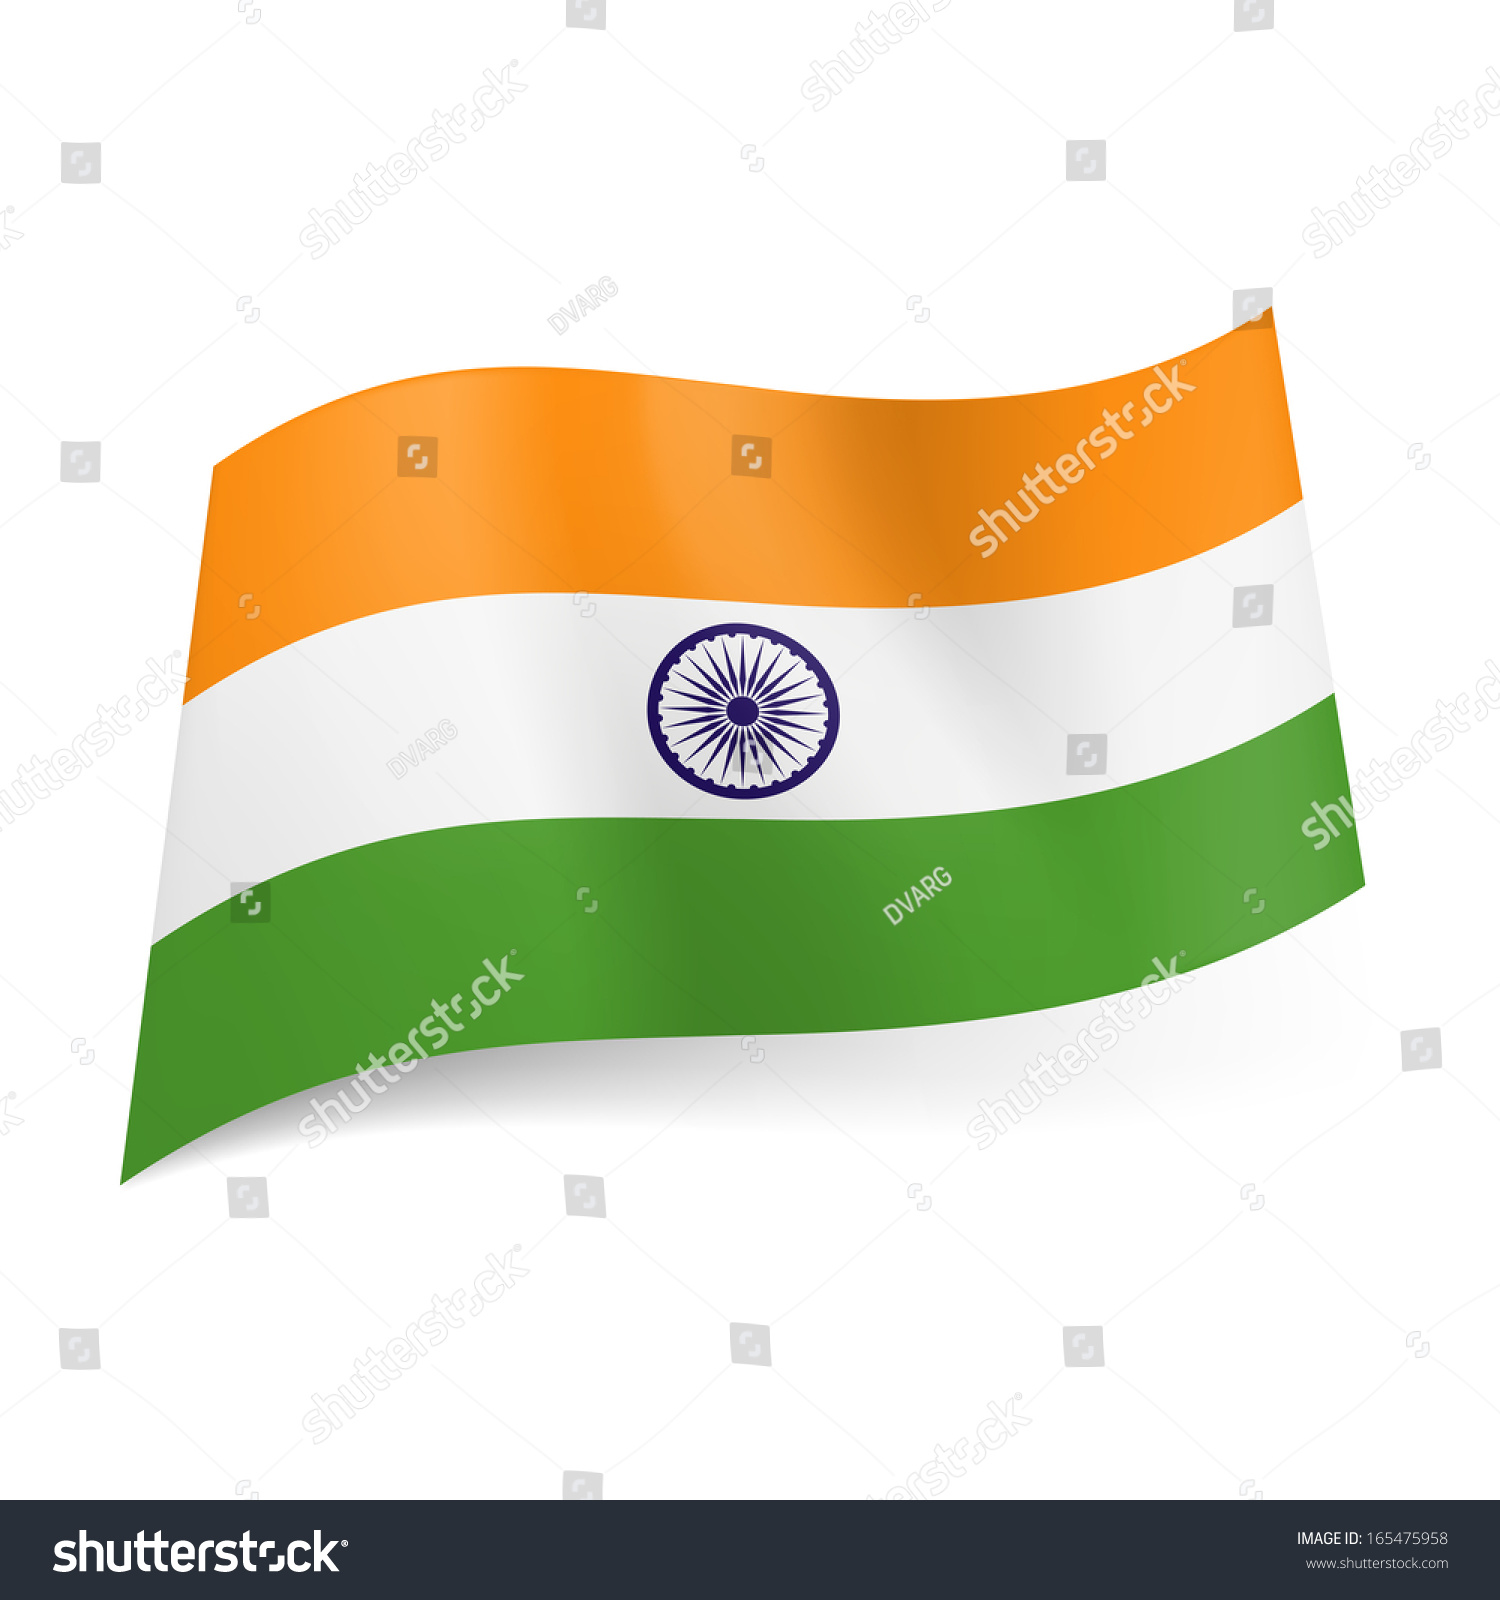 information on national flag of india India's national flag is a horizontal tricolor of deep saffron (kesaria) at the top, white in the middle and dark green at the bottom in equal proportion the ratio of the flag's width to its length is two to three a navy-blue wheel in the center of the white band represents the chakra.